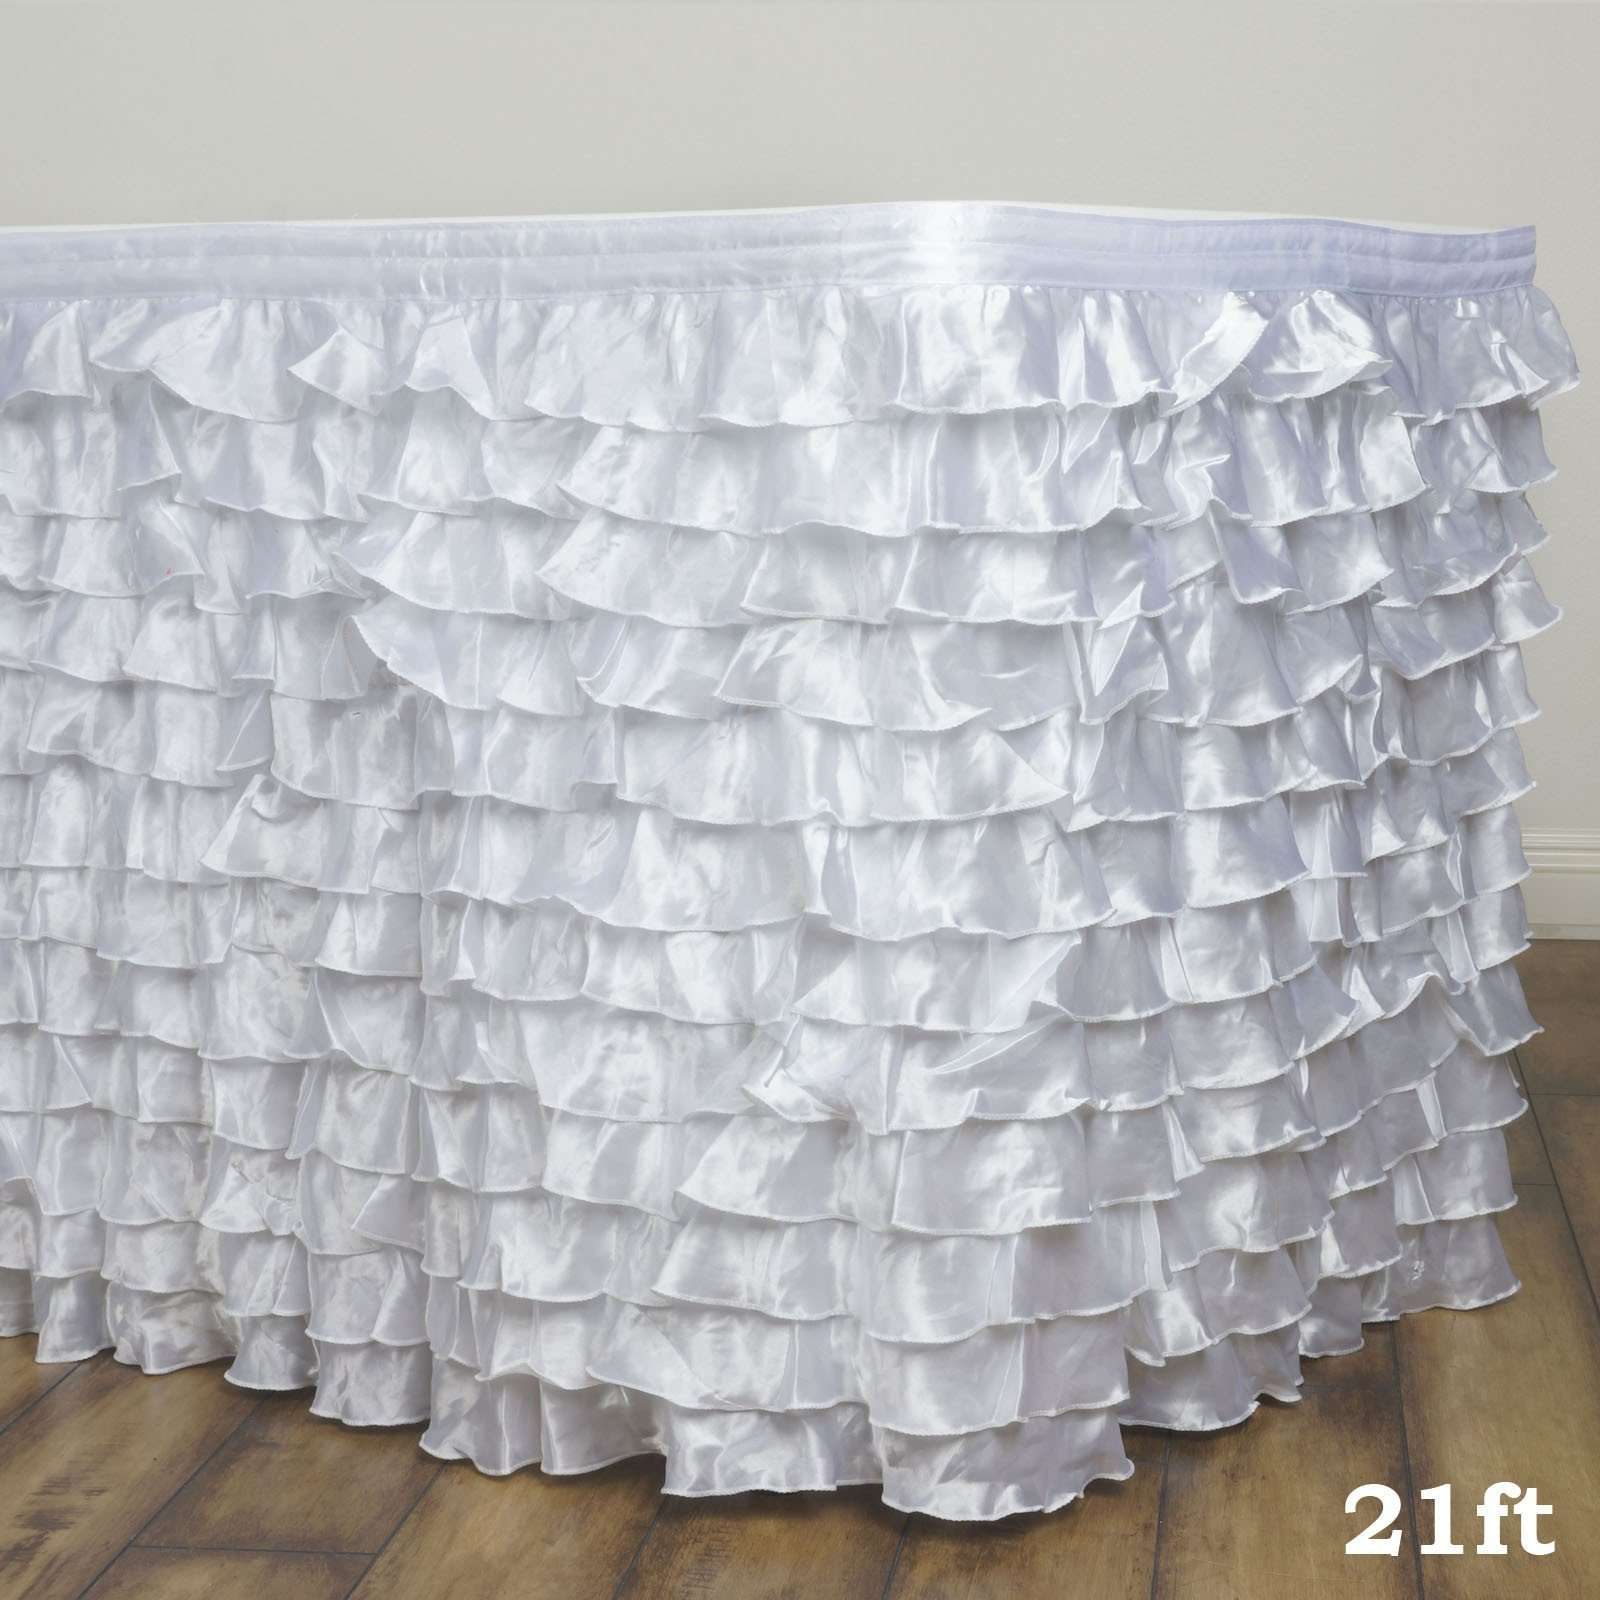 21ft Satin Ruffle Table Skirt White